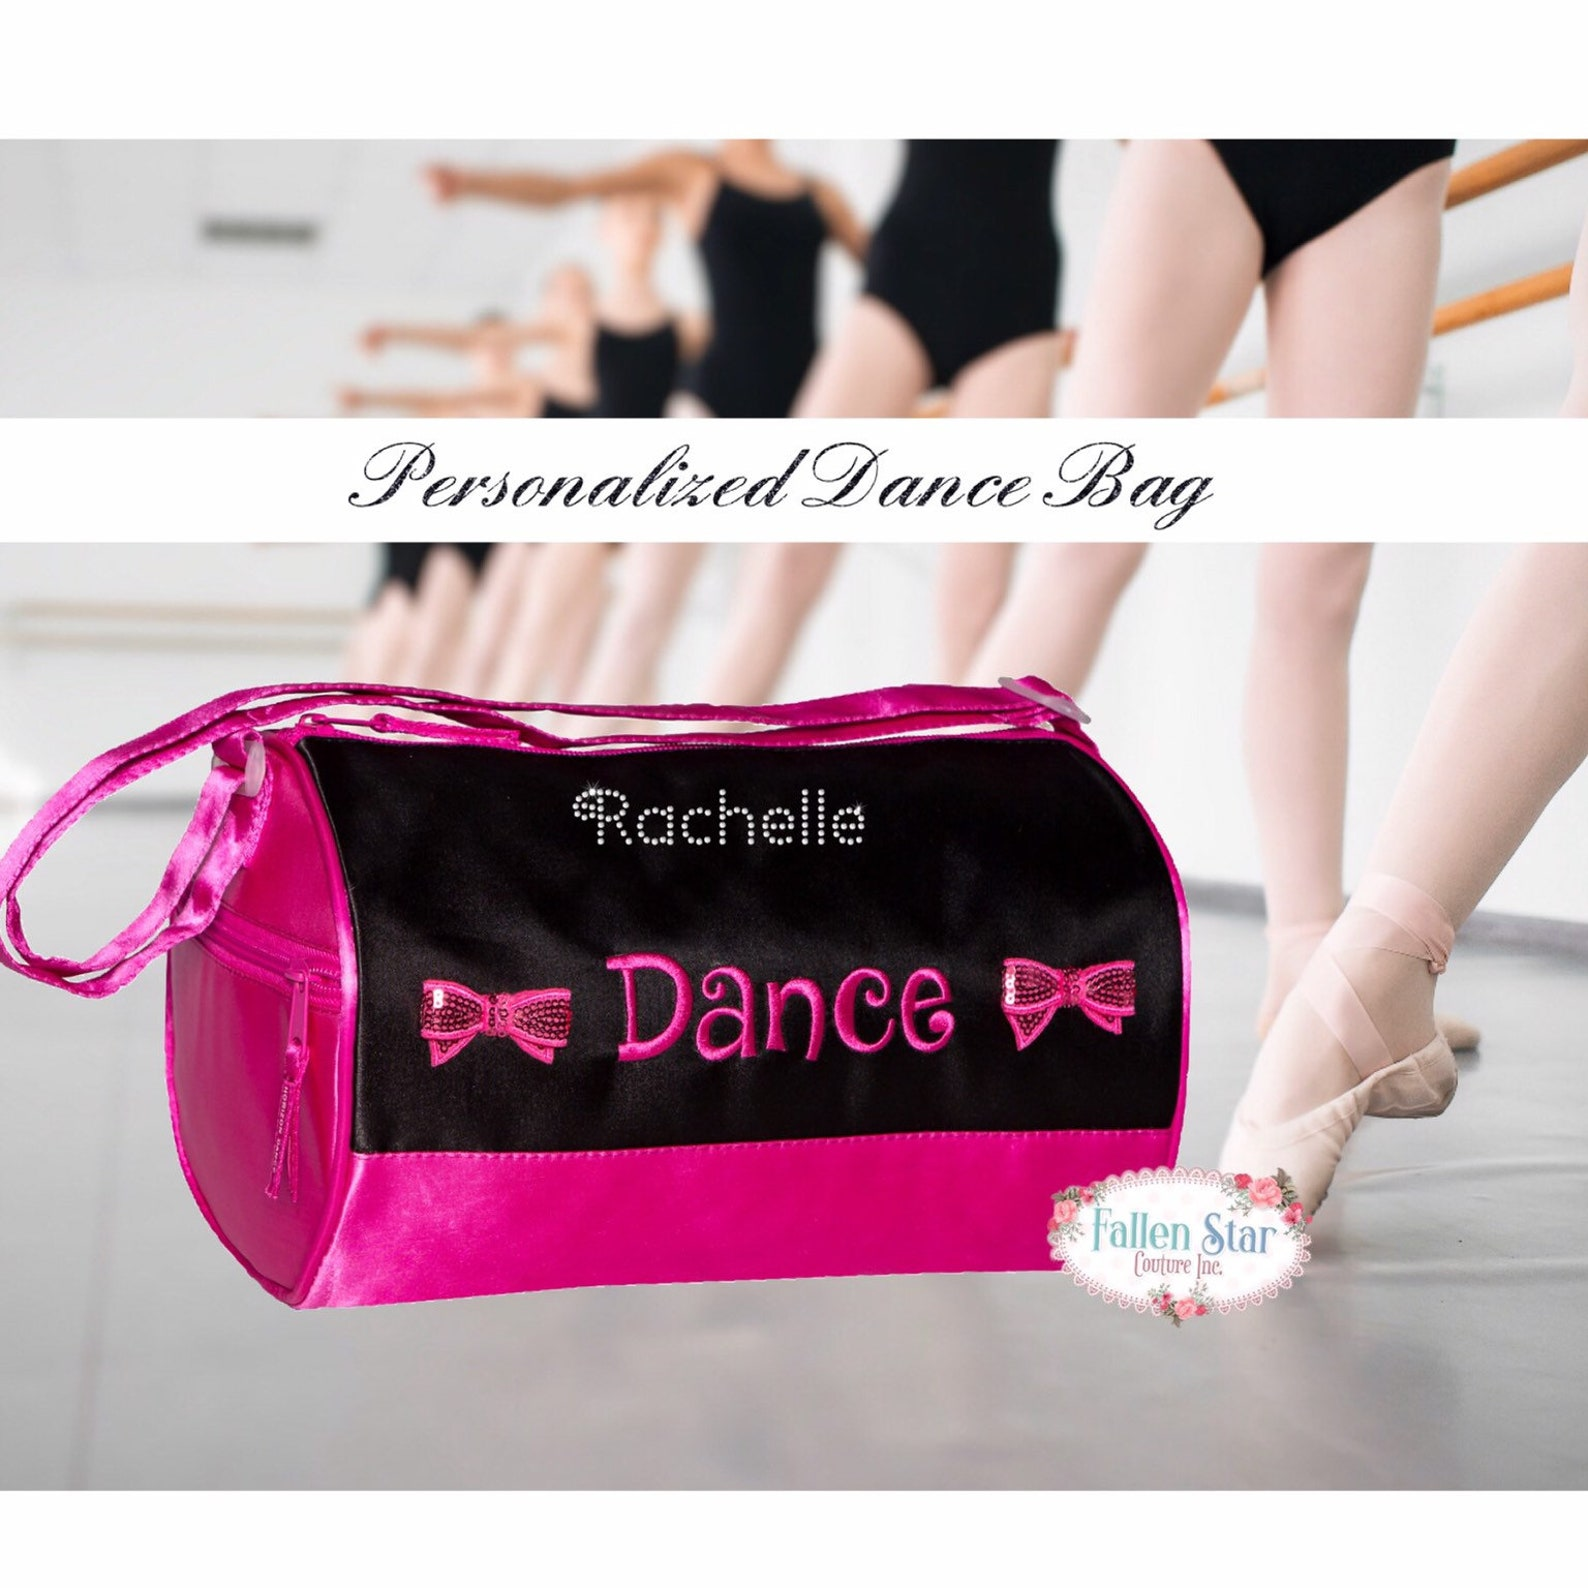 small personalized ballet bag , dance class bag, ballet slipper duffel bag, duffel bag for girls dance, personalized dance class